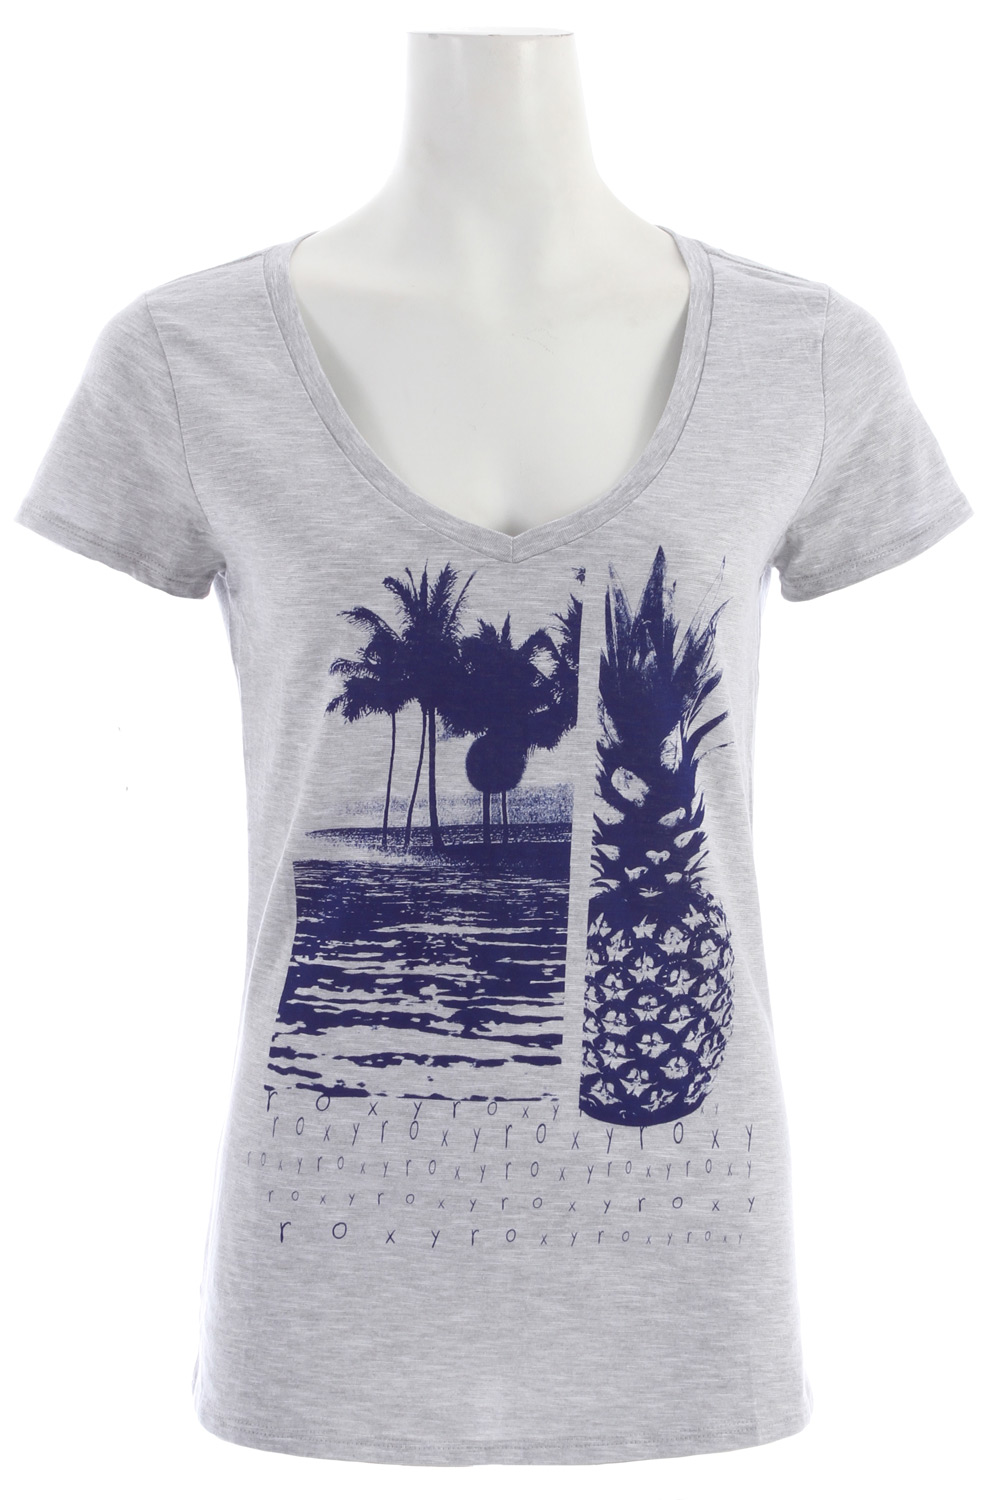 "Surf Key Features of the Roxy All Together T-Shirt: 100% cotton slub jersey V-neck tee 26"" hps - $18.95"